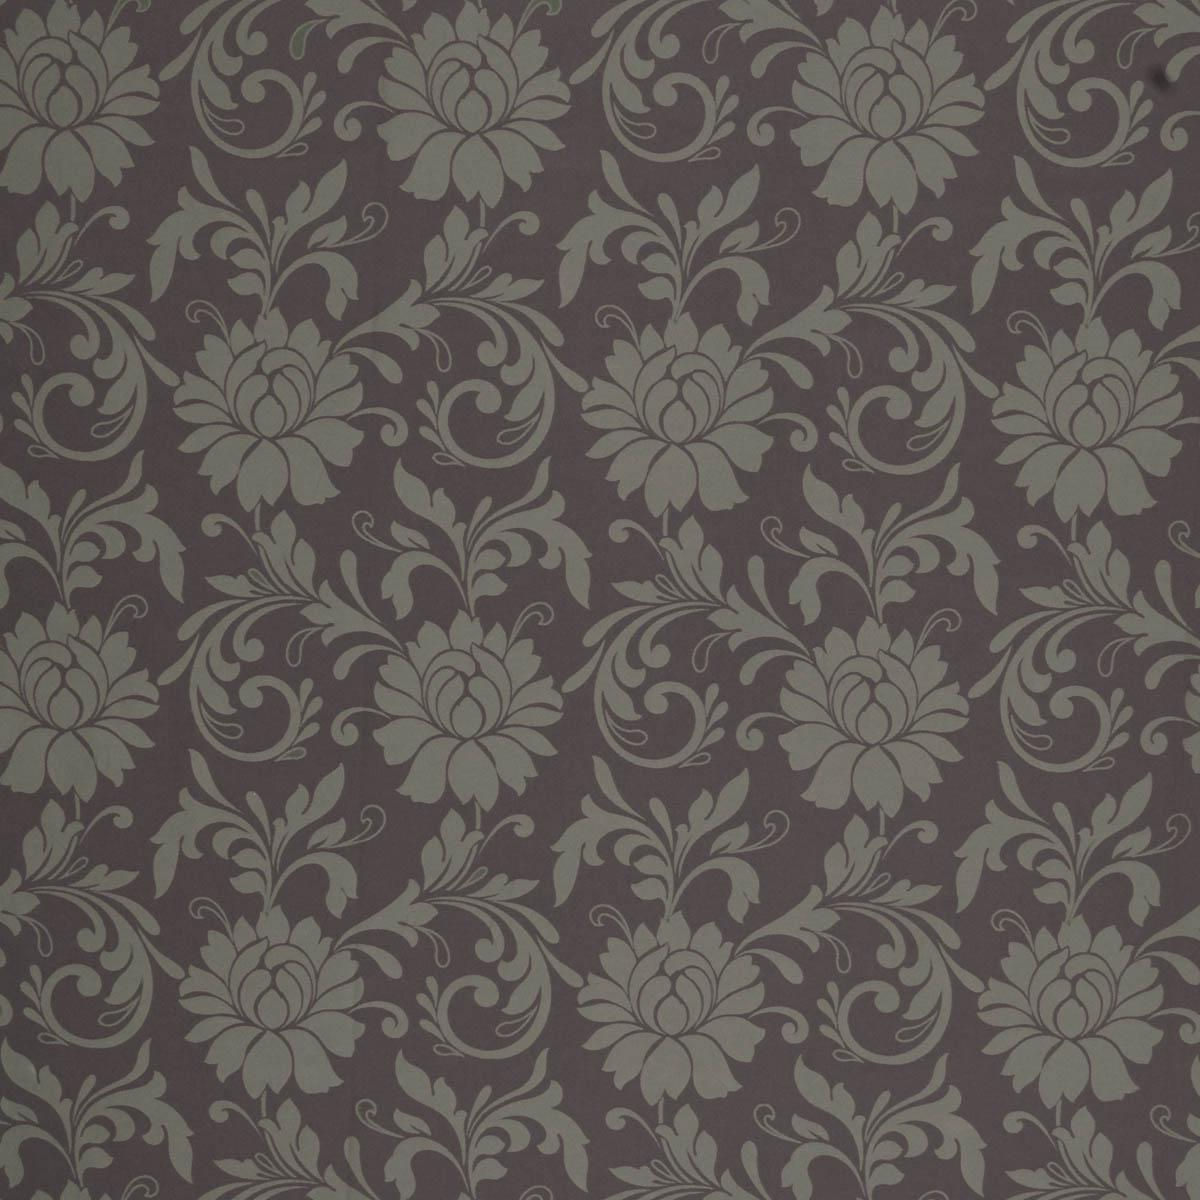 Mauve Harlequin Curtain Fabric